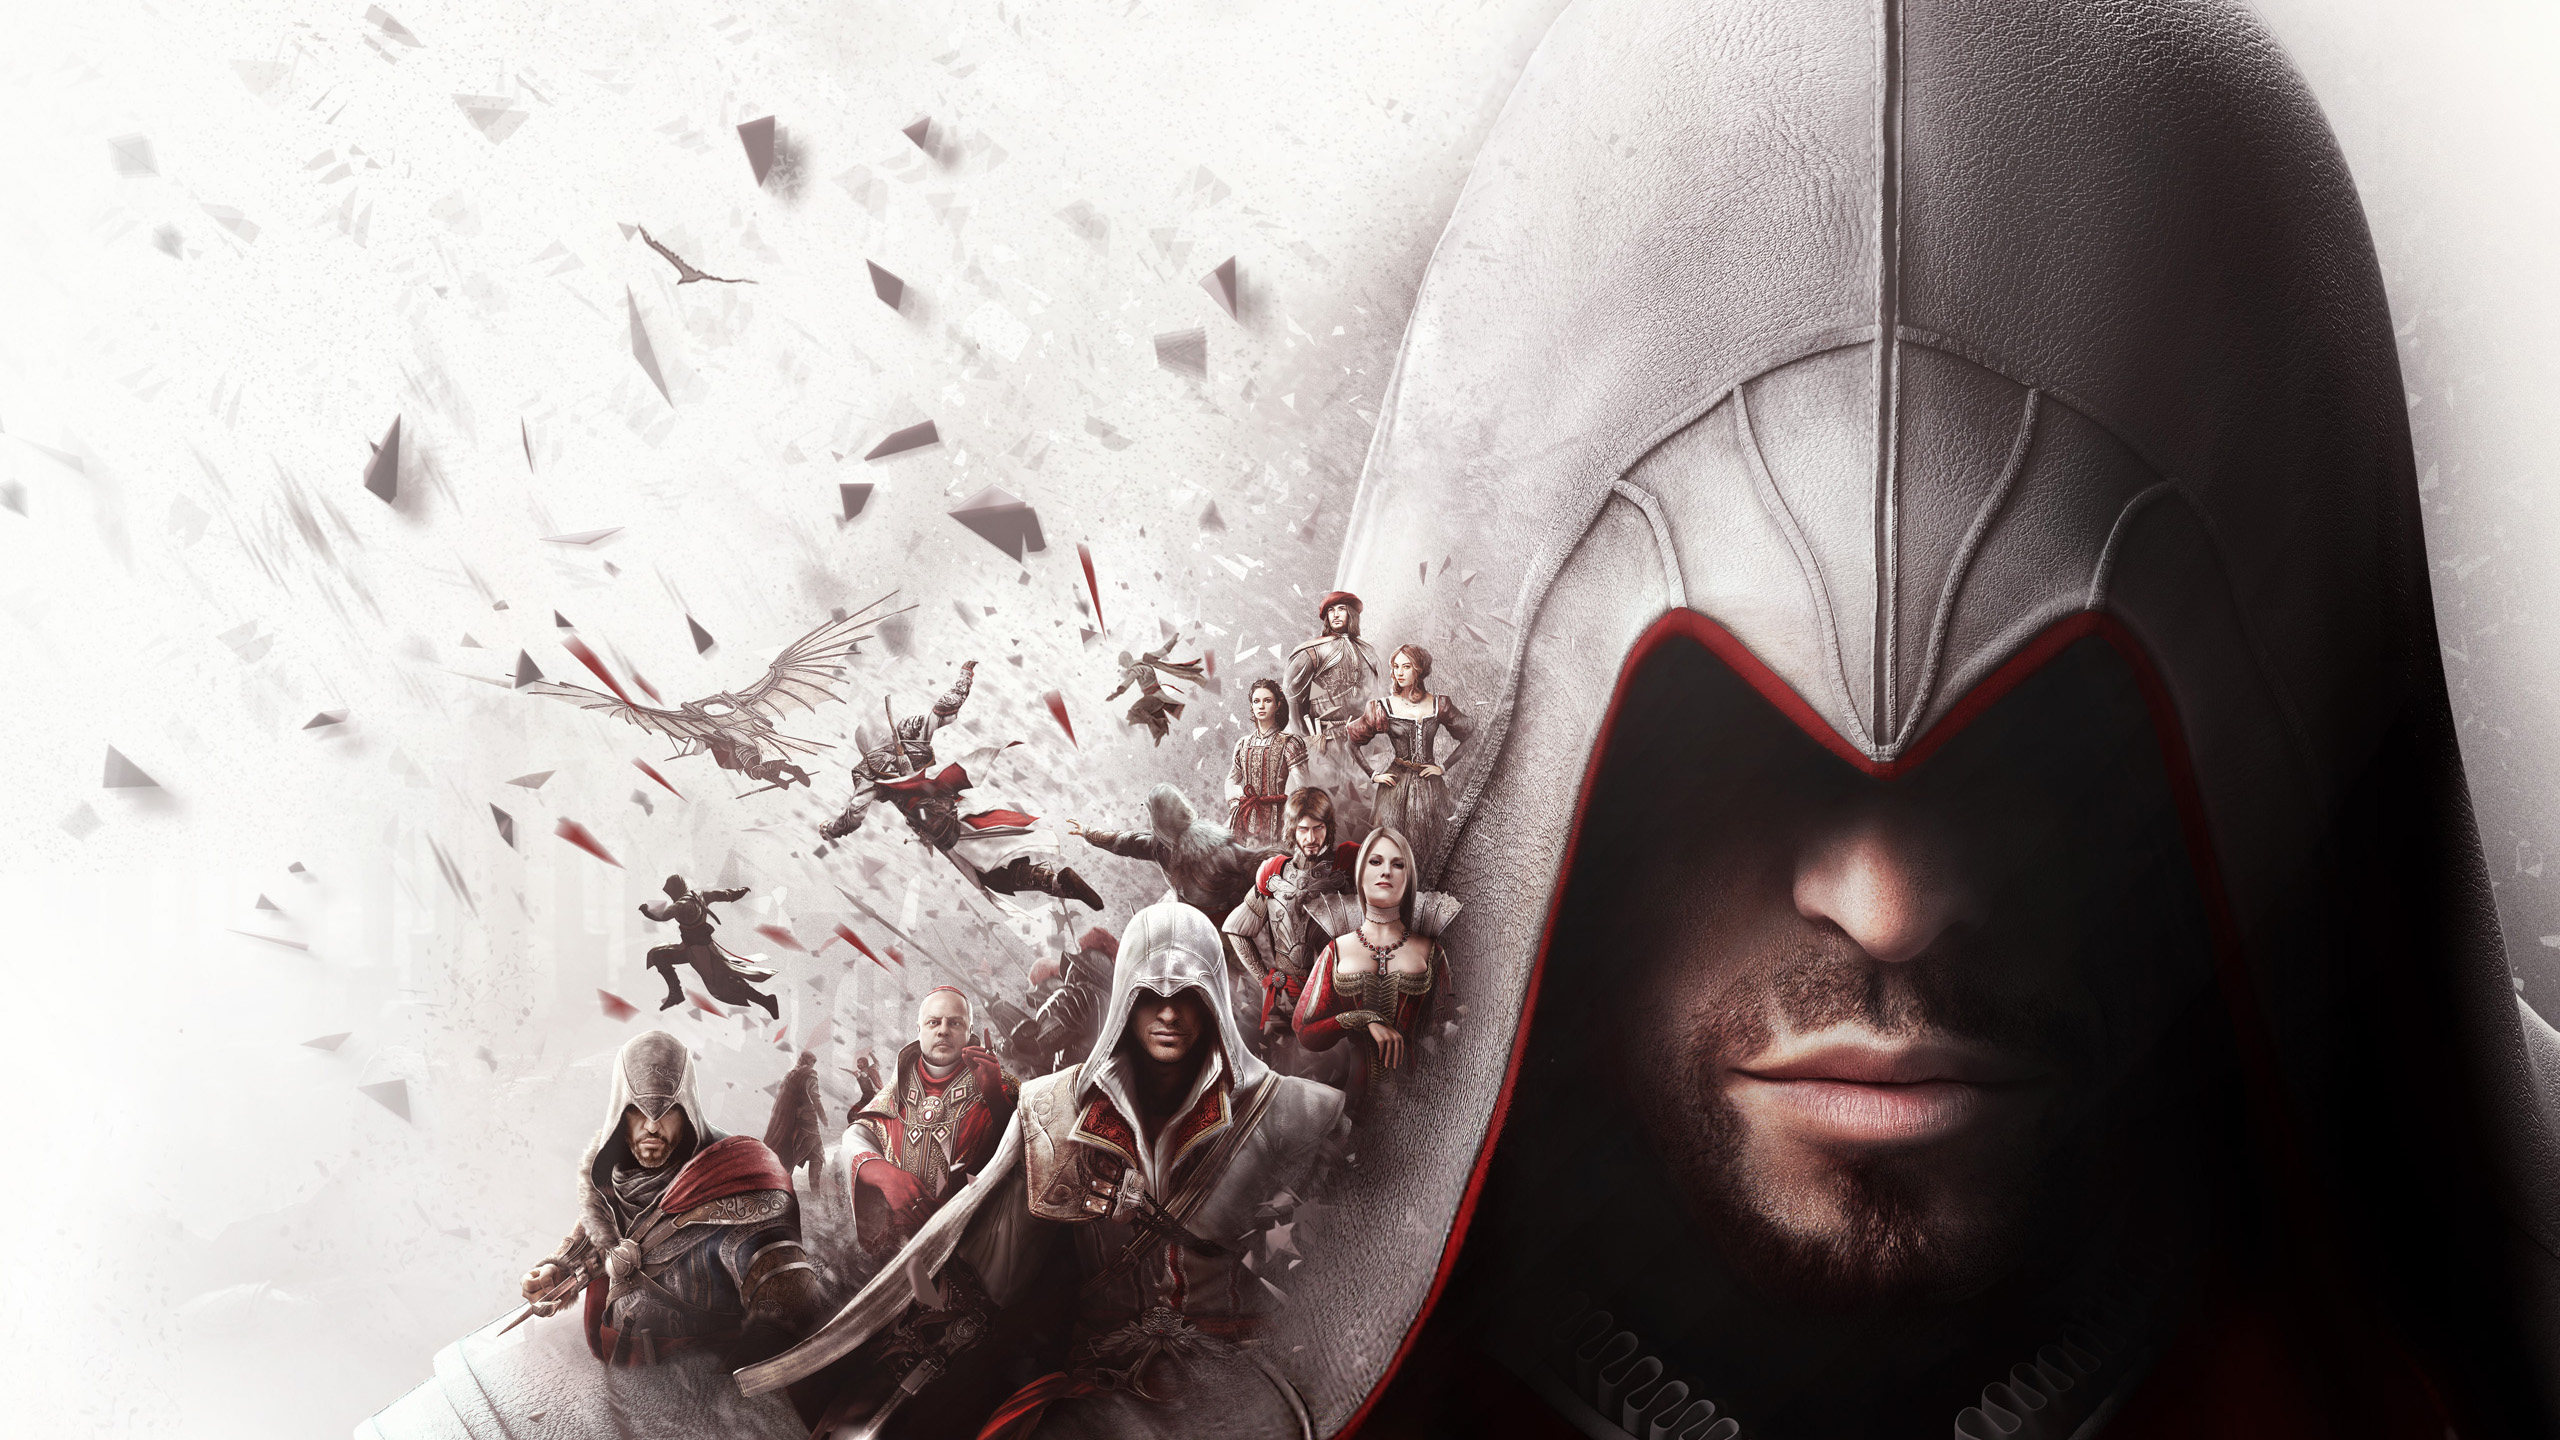 Ezio 4k Wallpapers For Your Desktop Or Mobile Screen Free